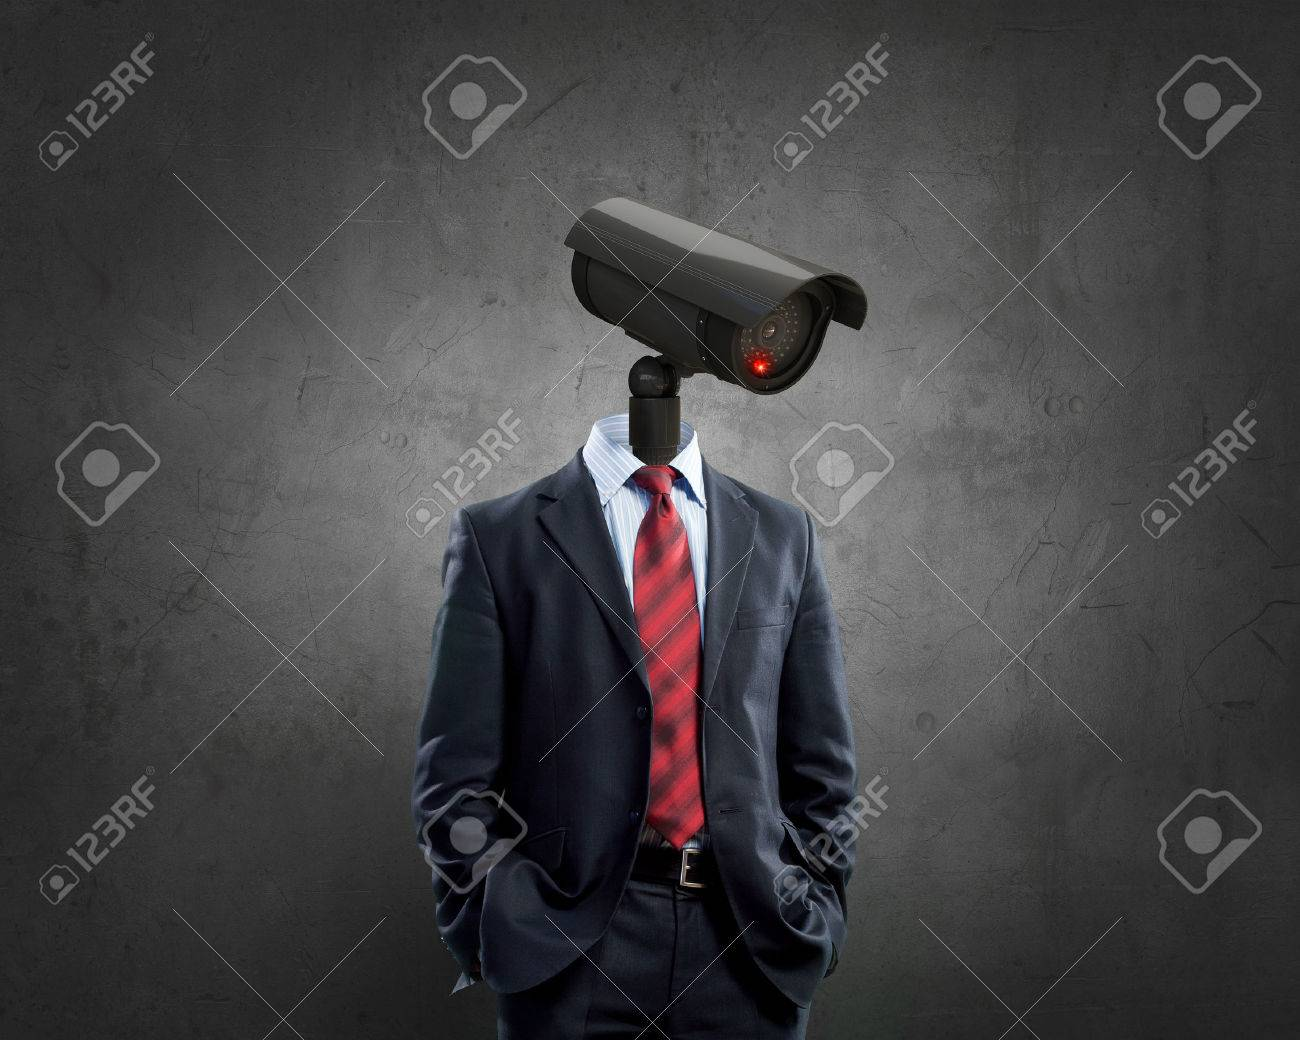 Portrait of camera headed man in suit as security concept - 51859675